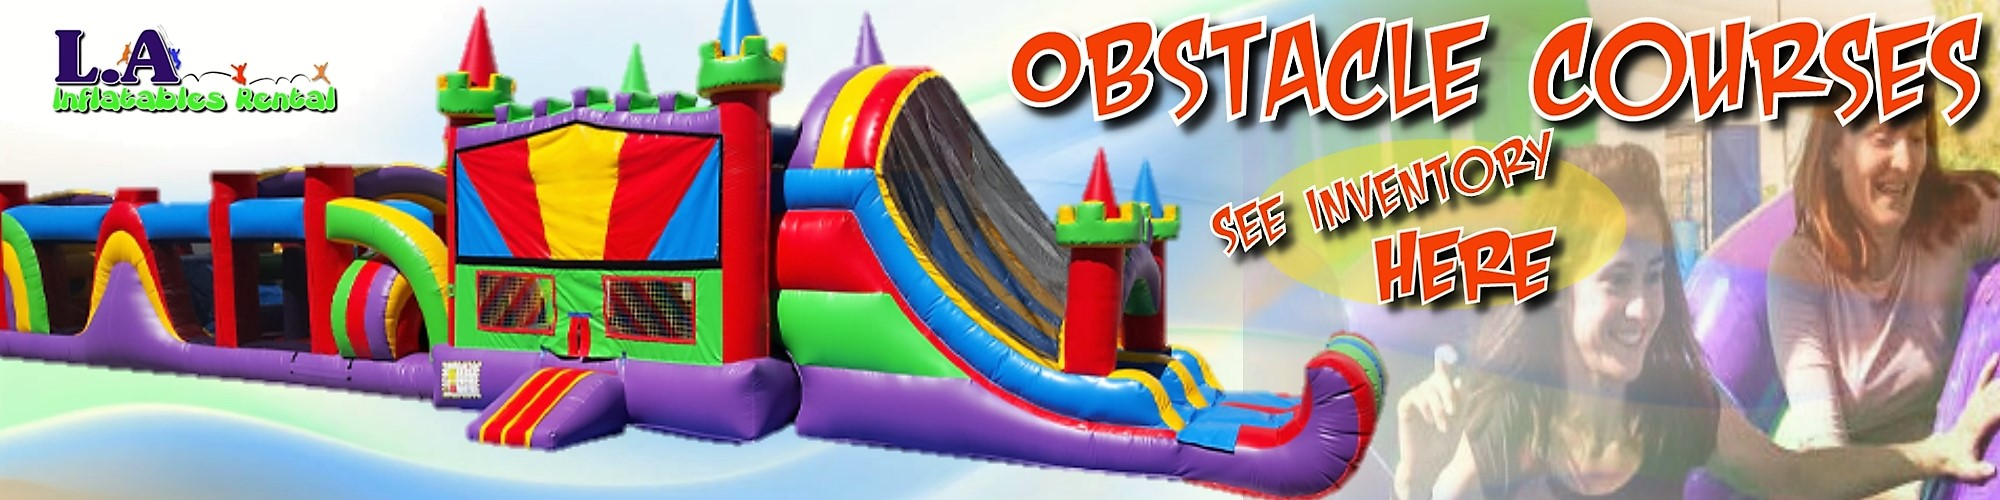 Obstacle Course Rentals Los Angeles